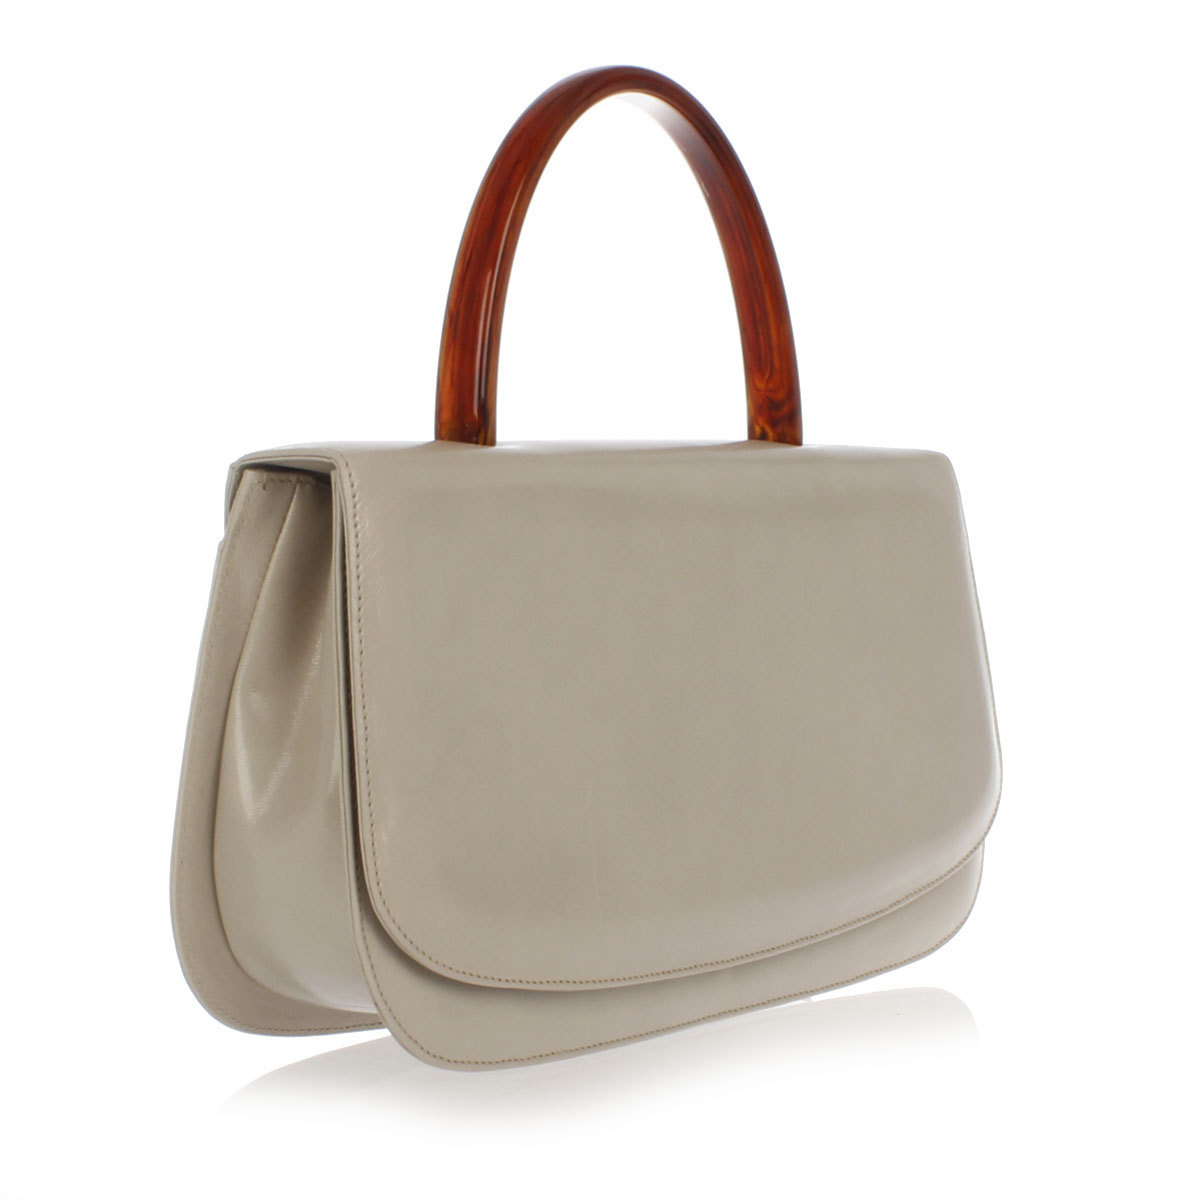 Leather handbags with price